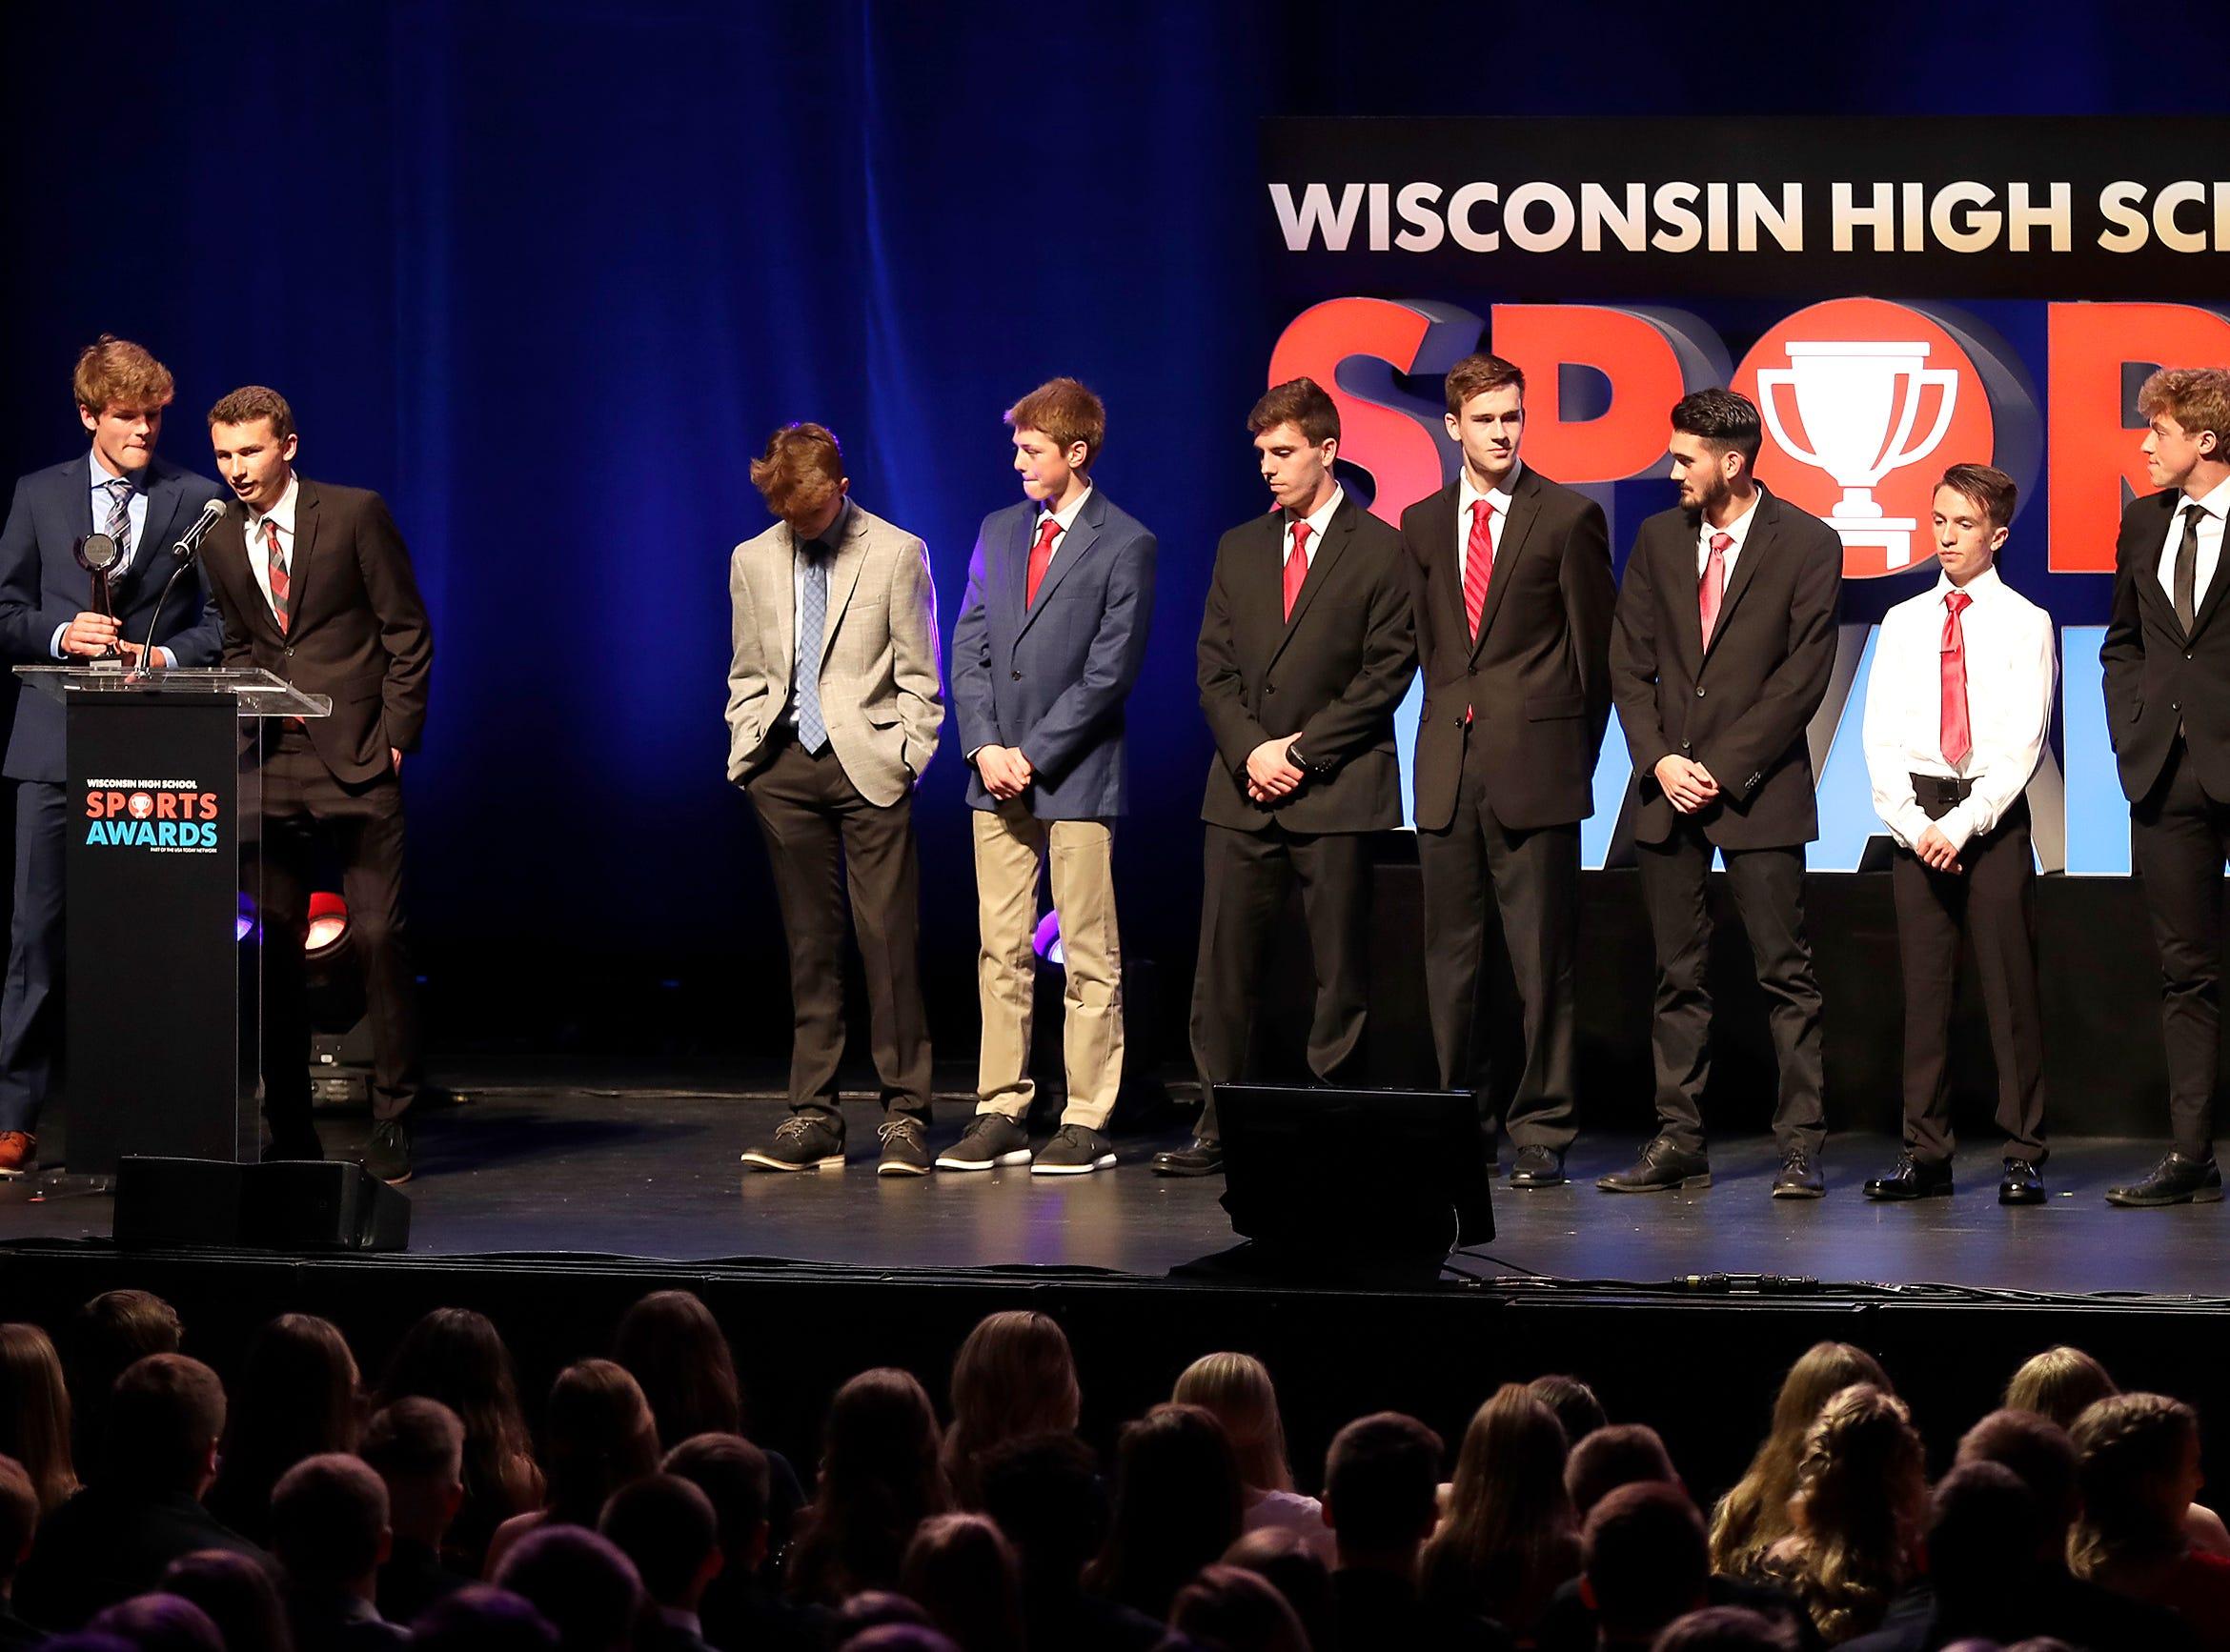 Top Team Fan Vote, the Neenah boys cross country team during the Wisconsin High School Sports Awards show at the Fox Cities Performing Arts Center on Wednesday, May 8, 2019, in Appleton, Wis. Olympic champion Michael Phelps was the guest speaker. The annual event was presented by USA TODAY NETWORK-Wisconsin.  Wm. Glasheen/USA TODAY NETWORK-Wisconsin.